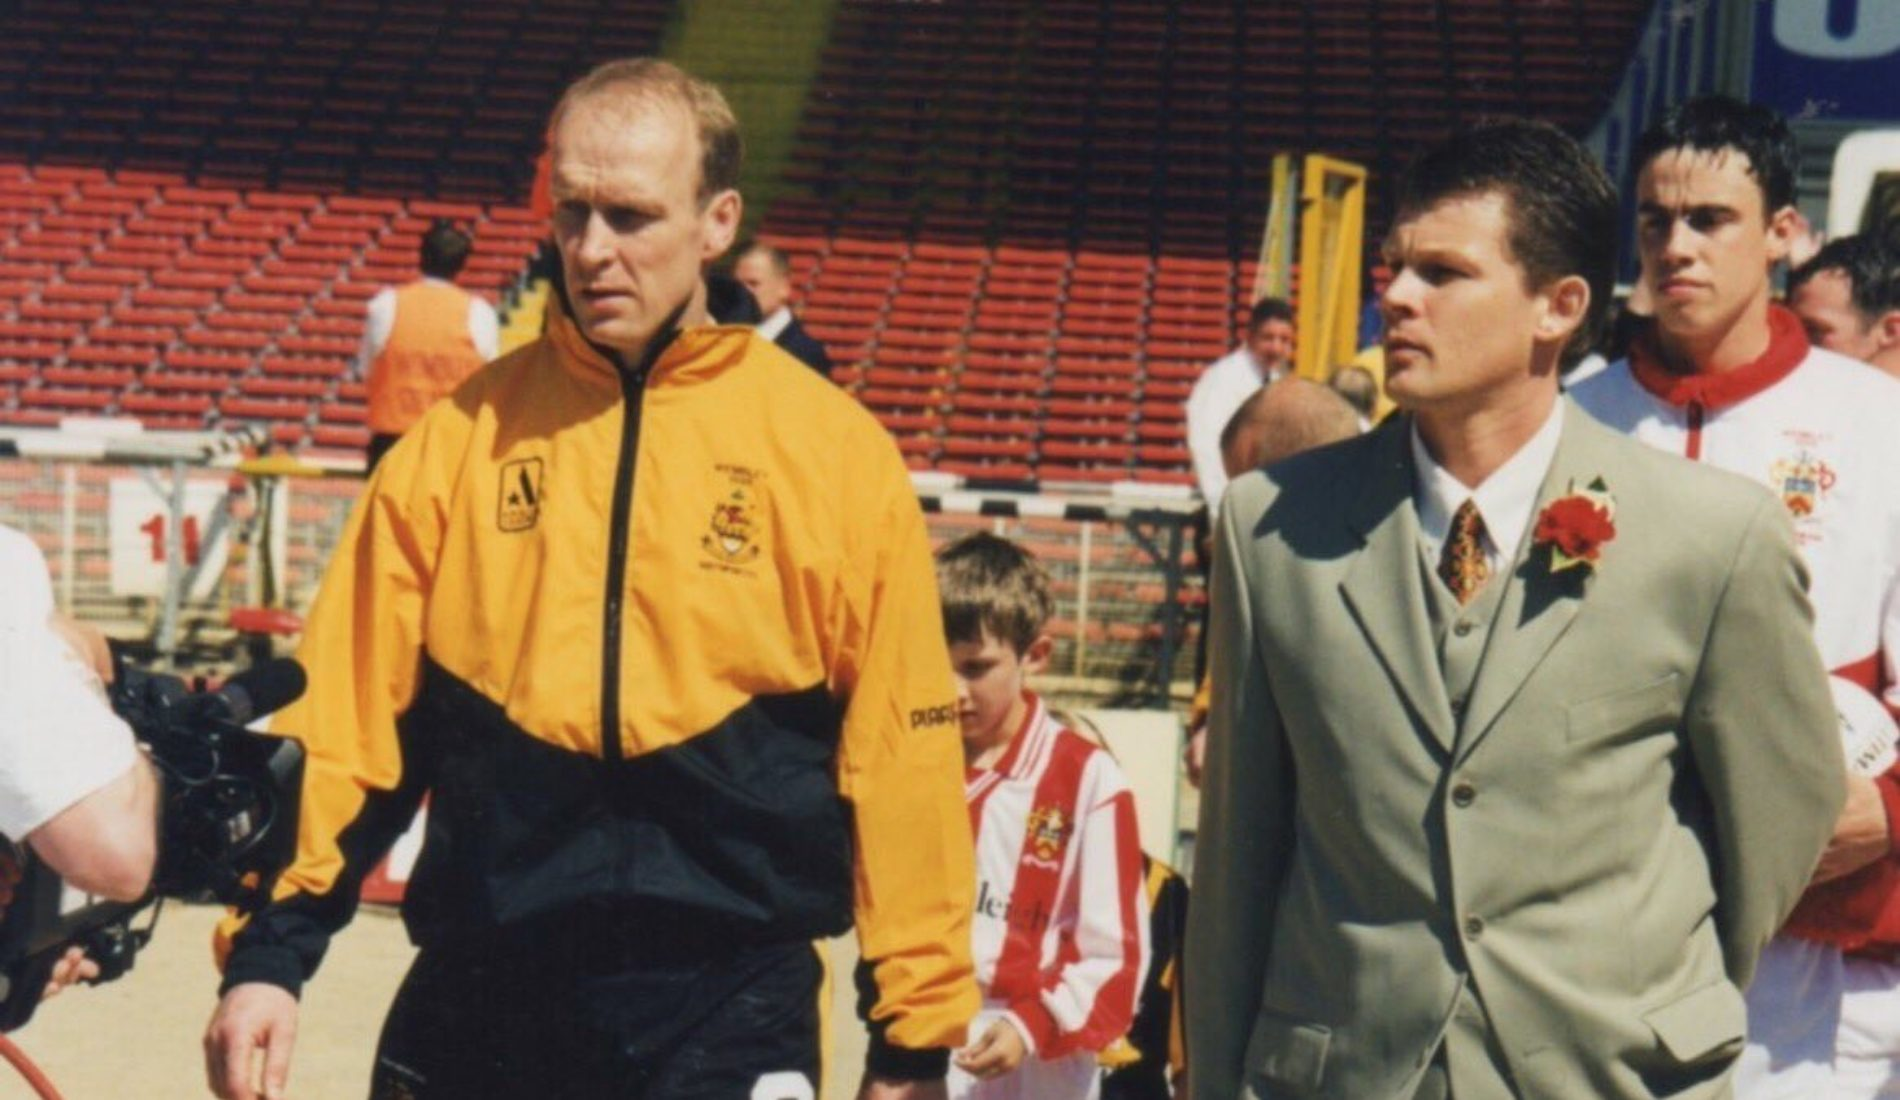 RIP Paul Futcher 1956-2016  Ex player-manager passes away at 60 years of age    Southport FC are shocked and saddened to learn of the death of former player-manager Paul Futcher who passed away today at the age of 60 after a short battle with cancer.        Chairman Charlie Clapham said on hearing...